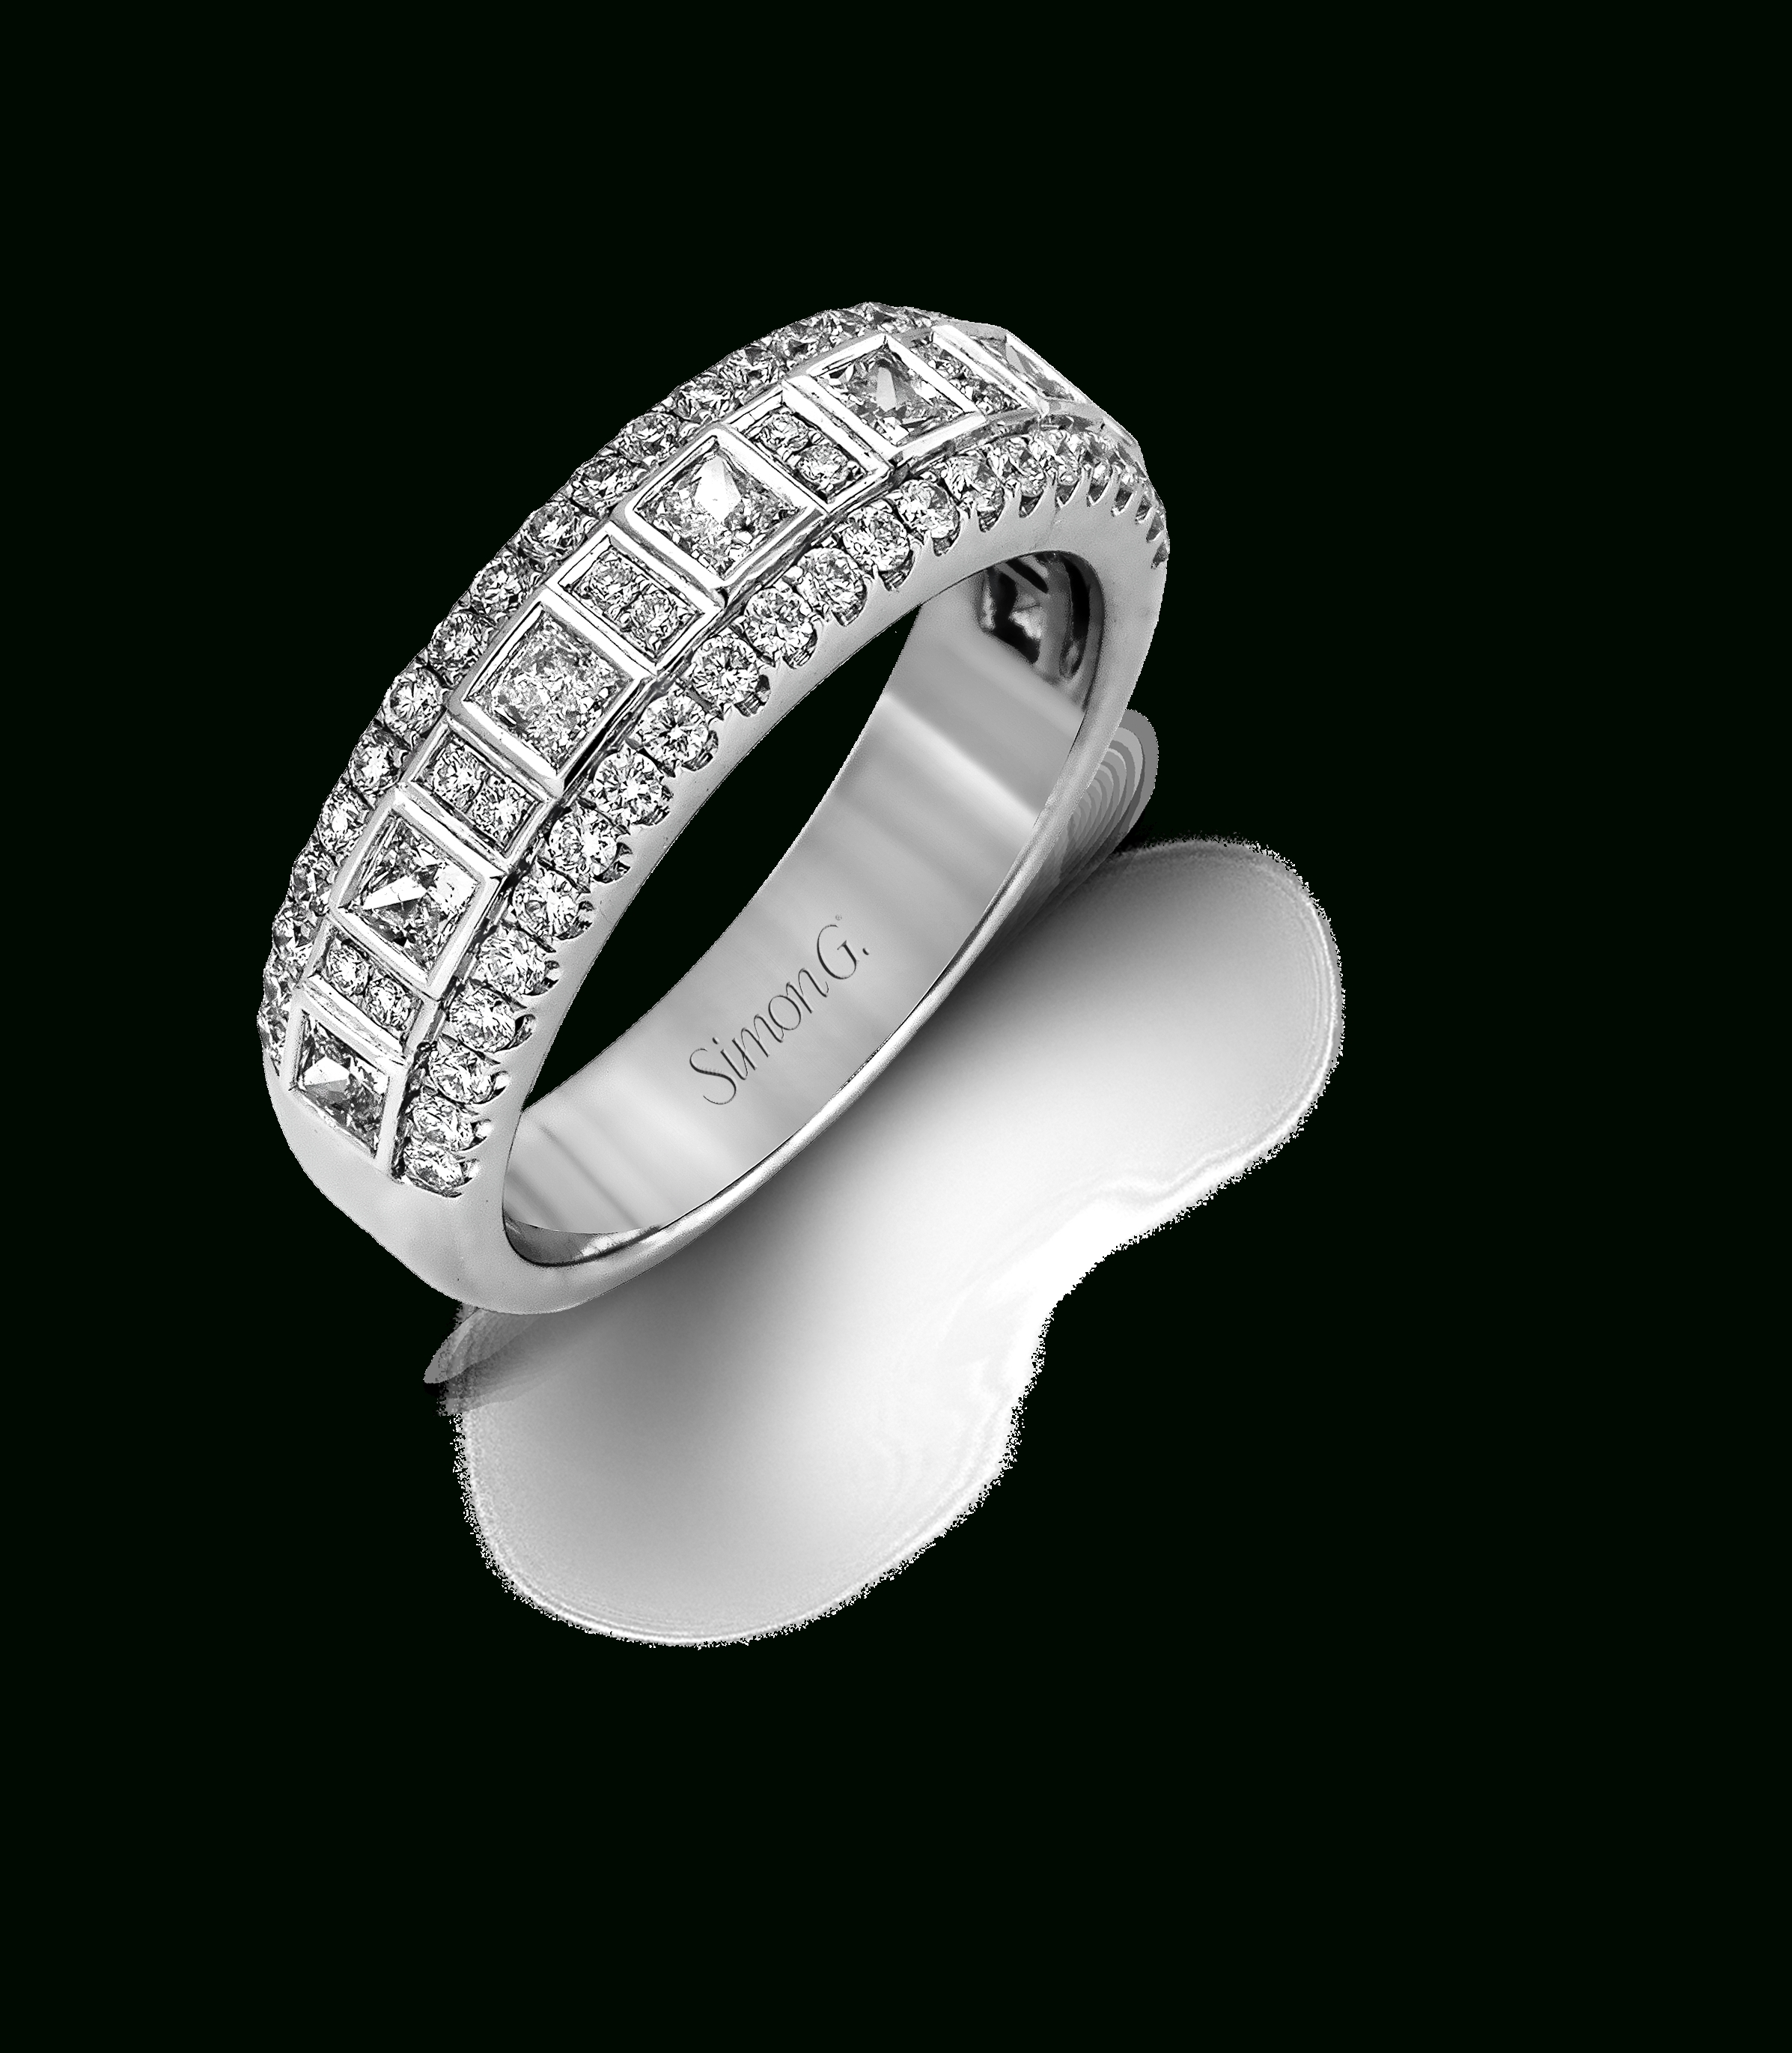 50Th Wedding Anniversary Diamond Rings Plus Anniversary Diamond Intended For 2018 White Gold Anniversary Rings (View 7 of 25)